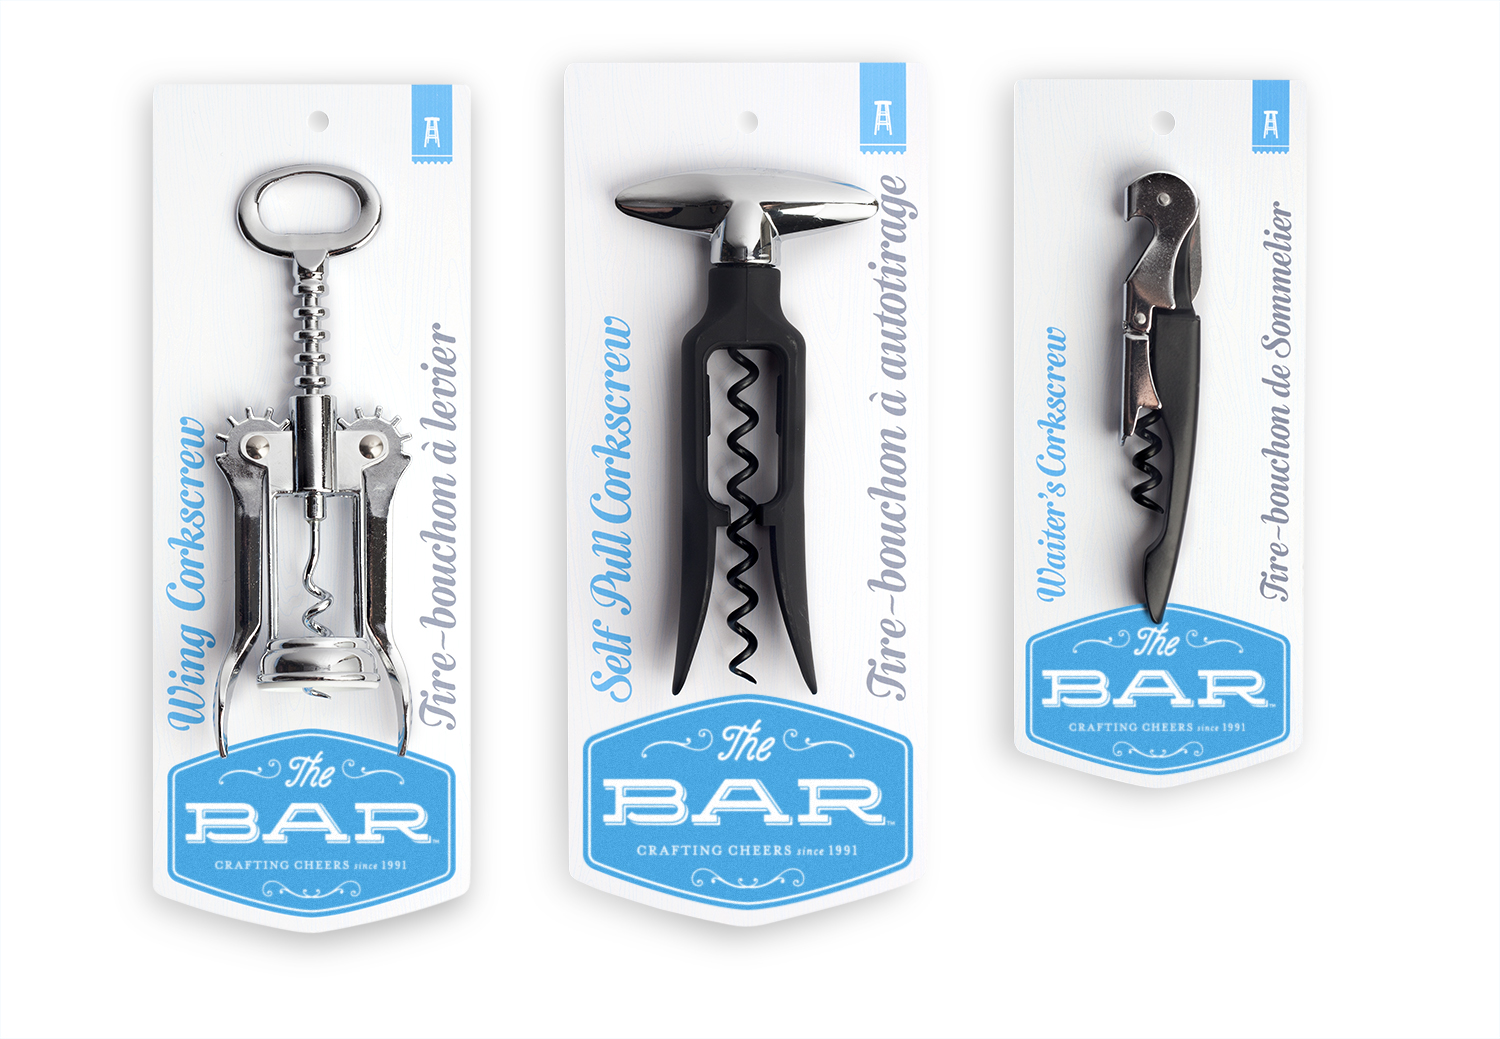 The Bar Corkscrews